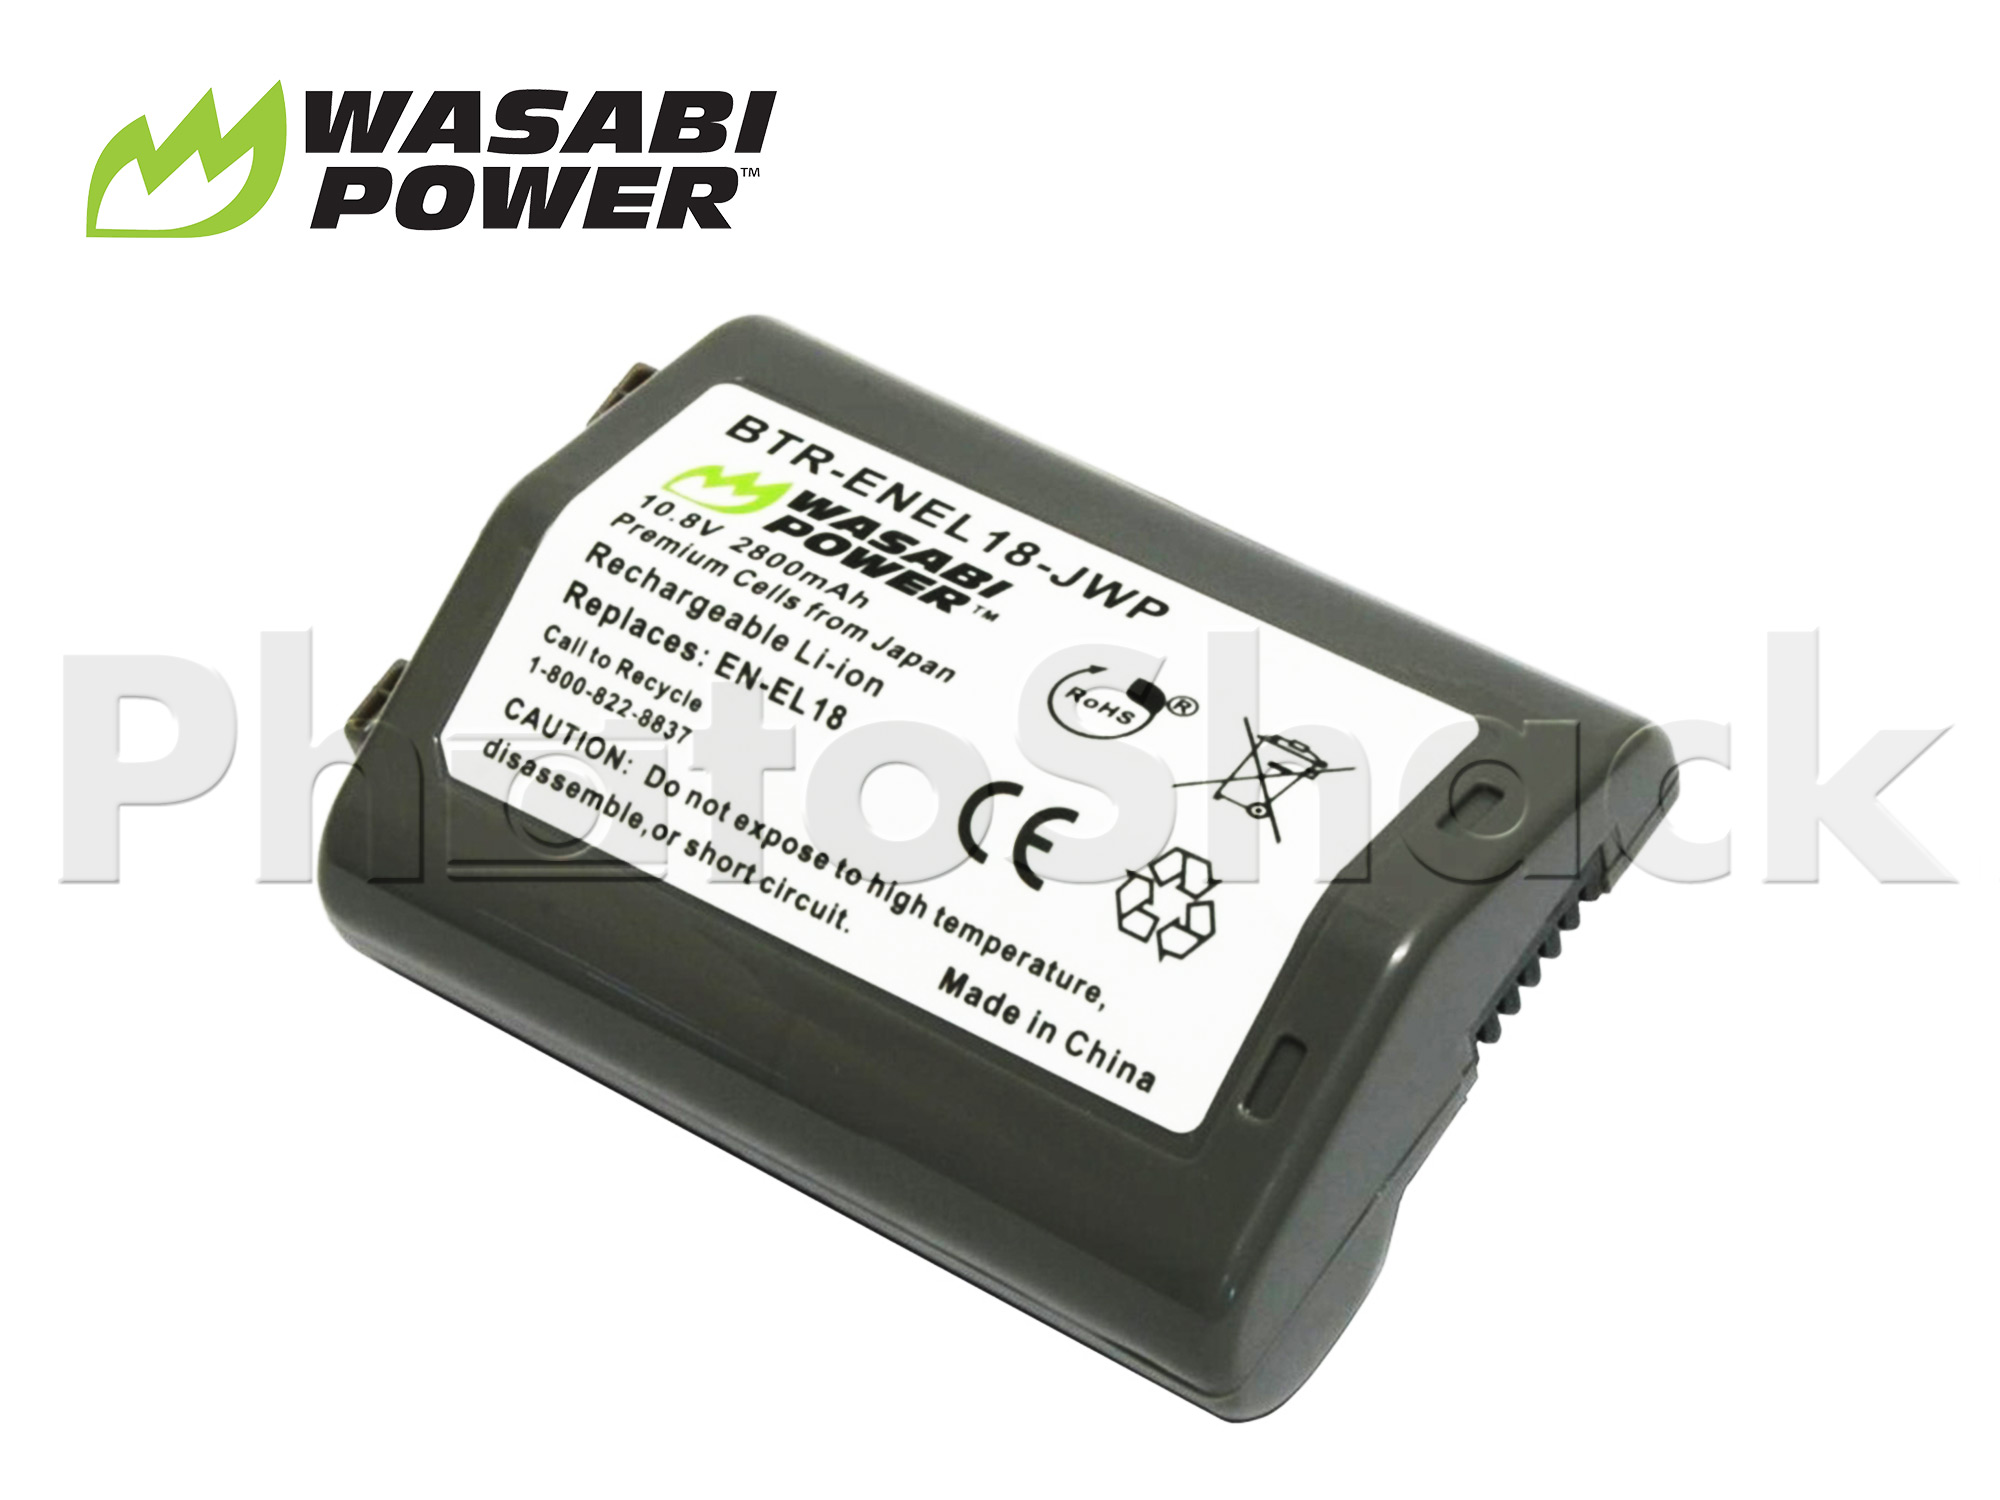 ENEL18 Battery for Nikon - Wasabi Power